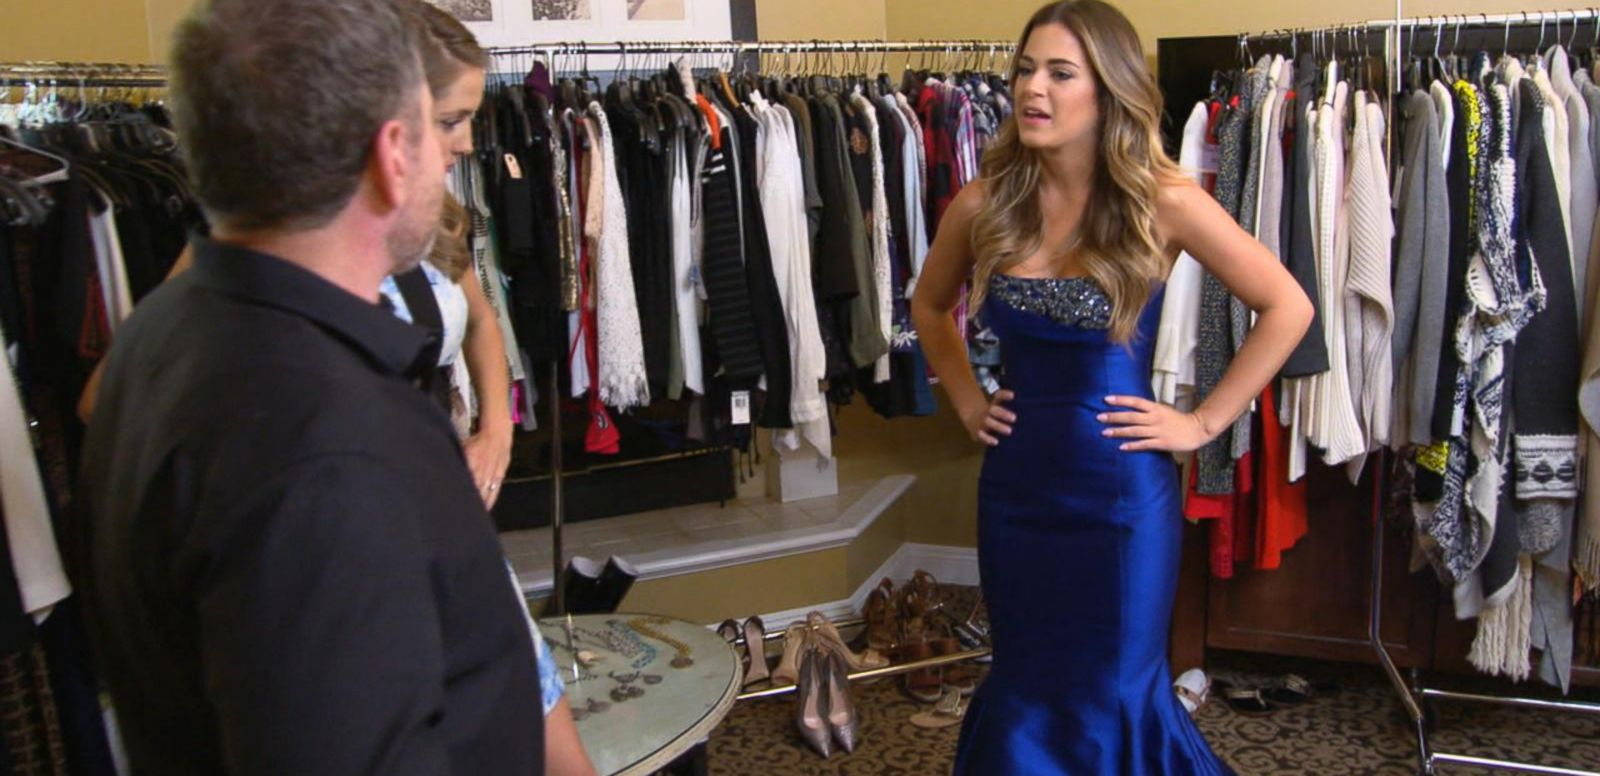 VIDEO: JoJo Fletcher Gives Sneak Peek Inside 'Bachelorette' Wardrobe